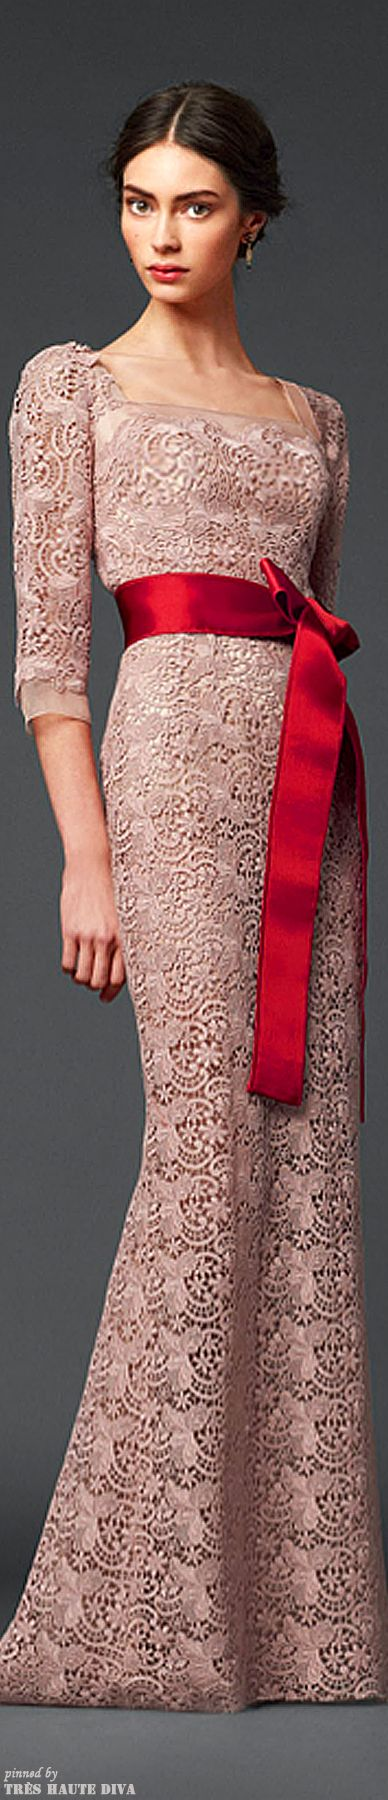 """Dolce & Gabbana Winter '14 collection #gowns,✮✮Feel free to share on Pinterest"""" ♥ღ www.FASHIONANDCLOTHINGBLOG.COM"""